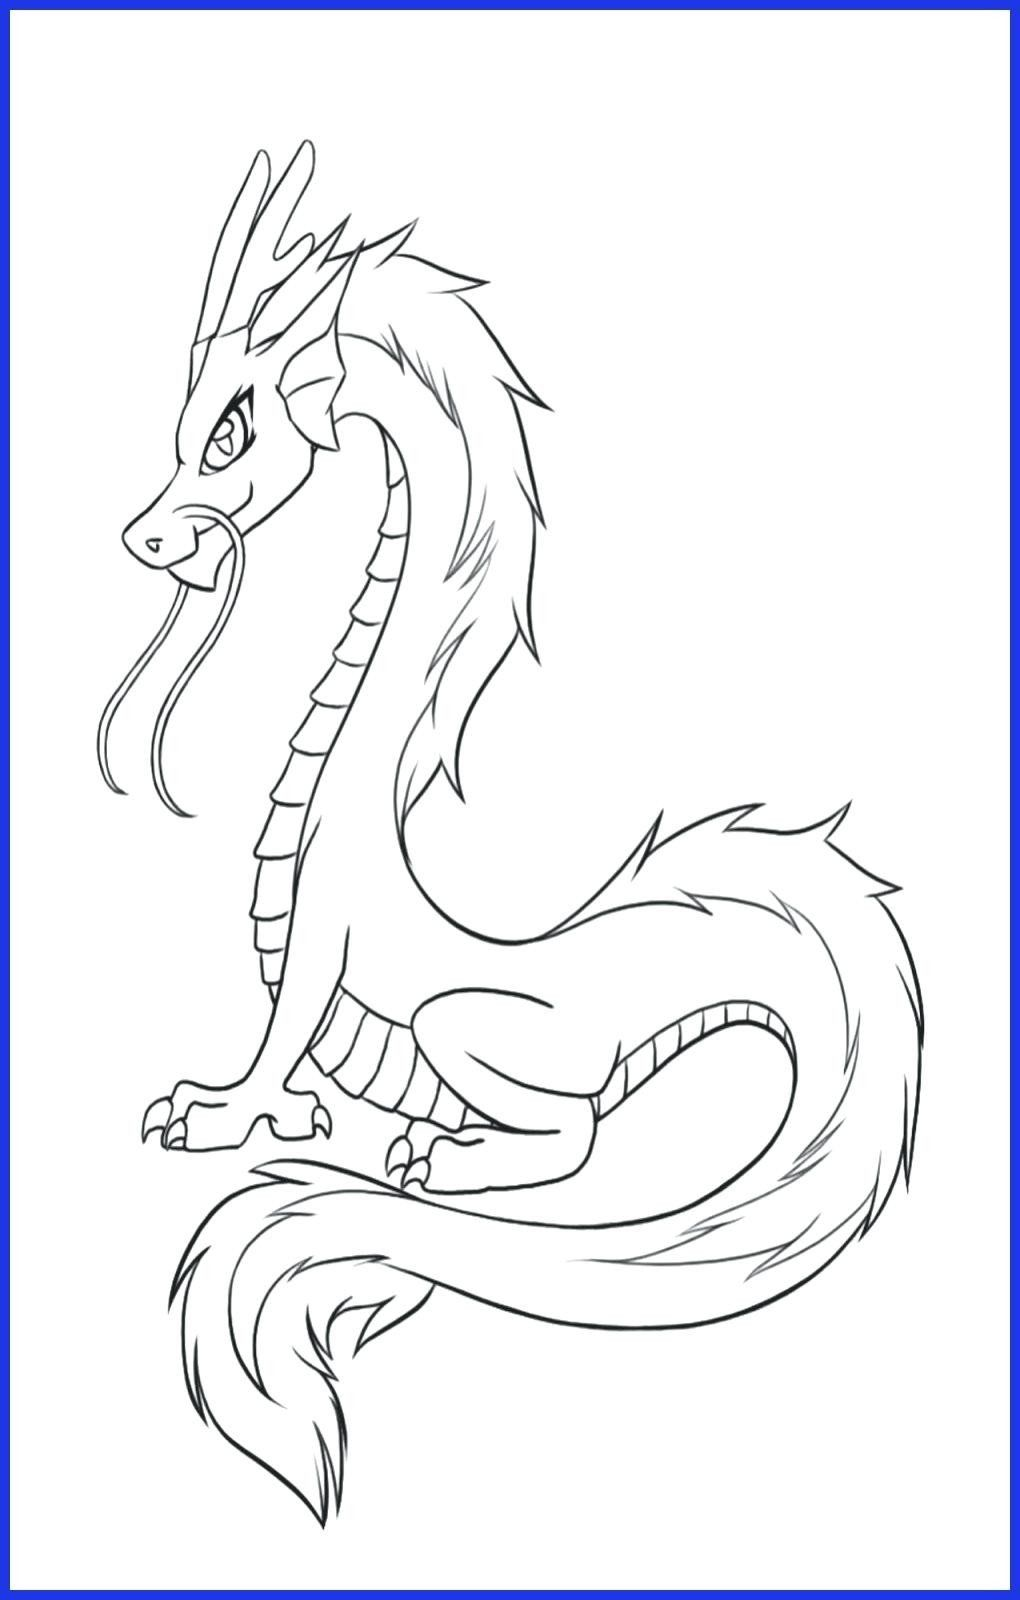 Game Of Thrones Coloring Pages Unique Game Of Thrones Coloring Niagarapaper Dragon Coloring Page Easy Dragon Drawings Dragon Drawing